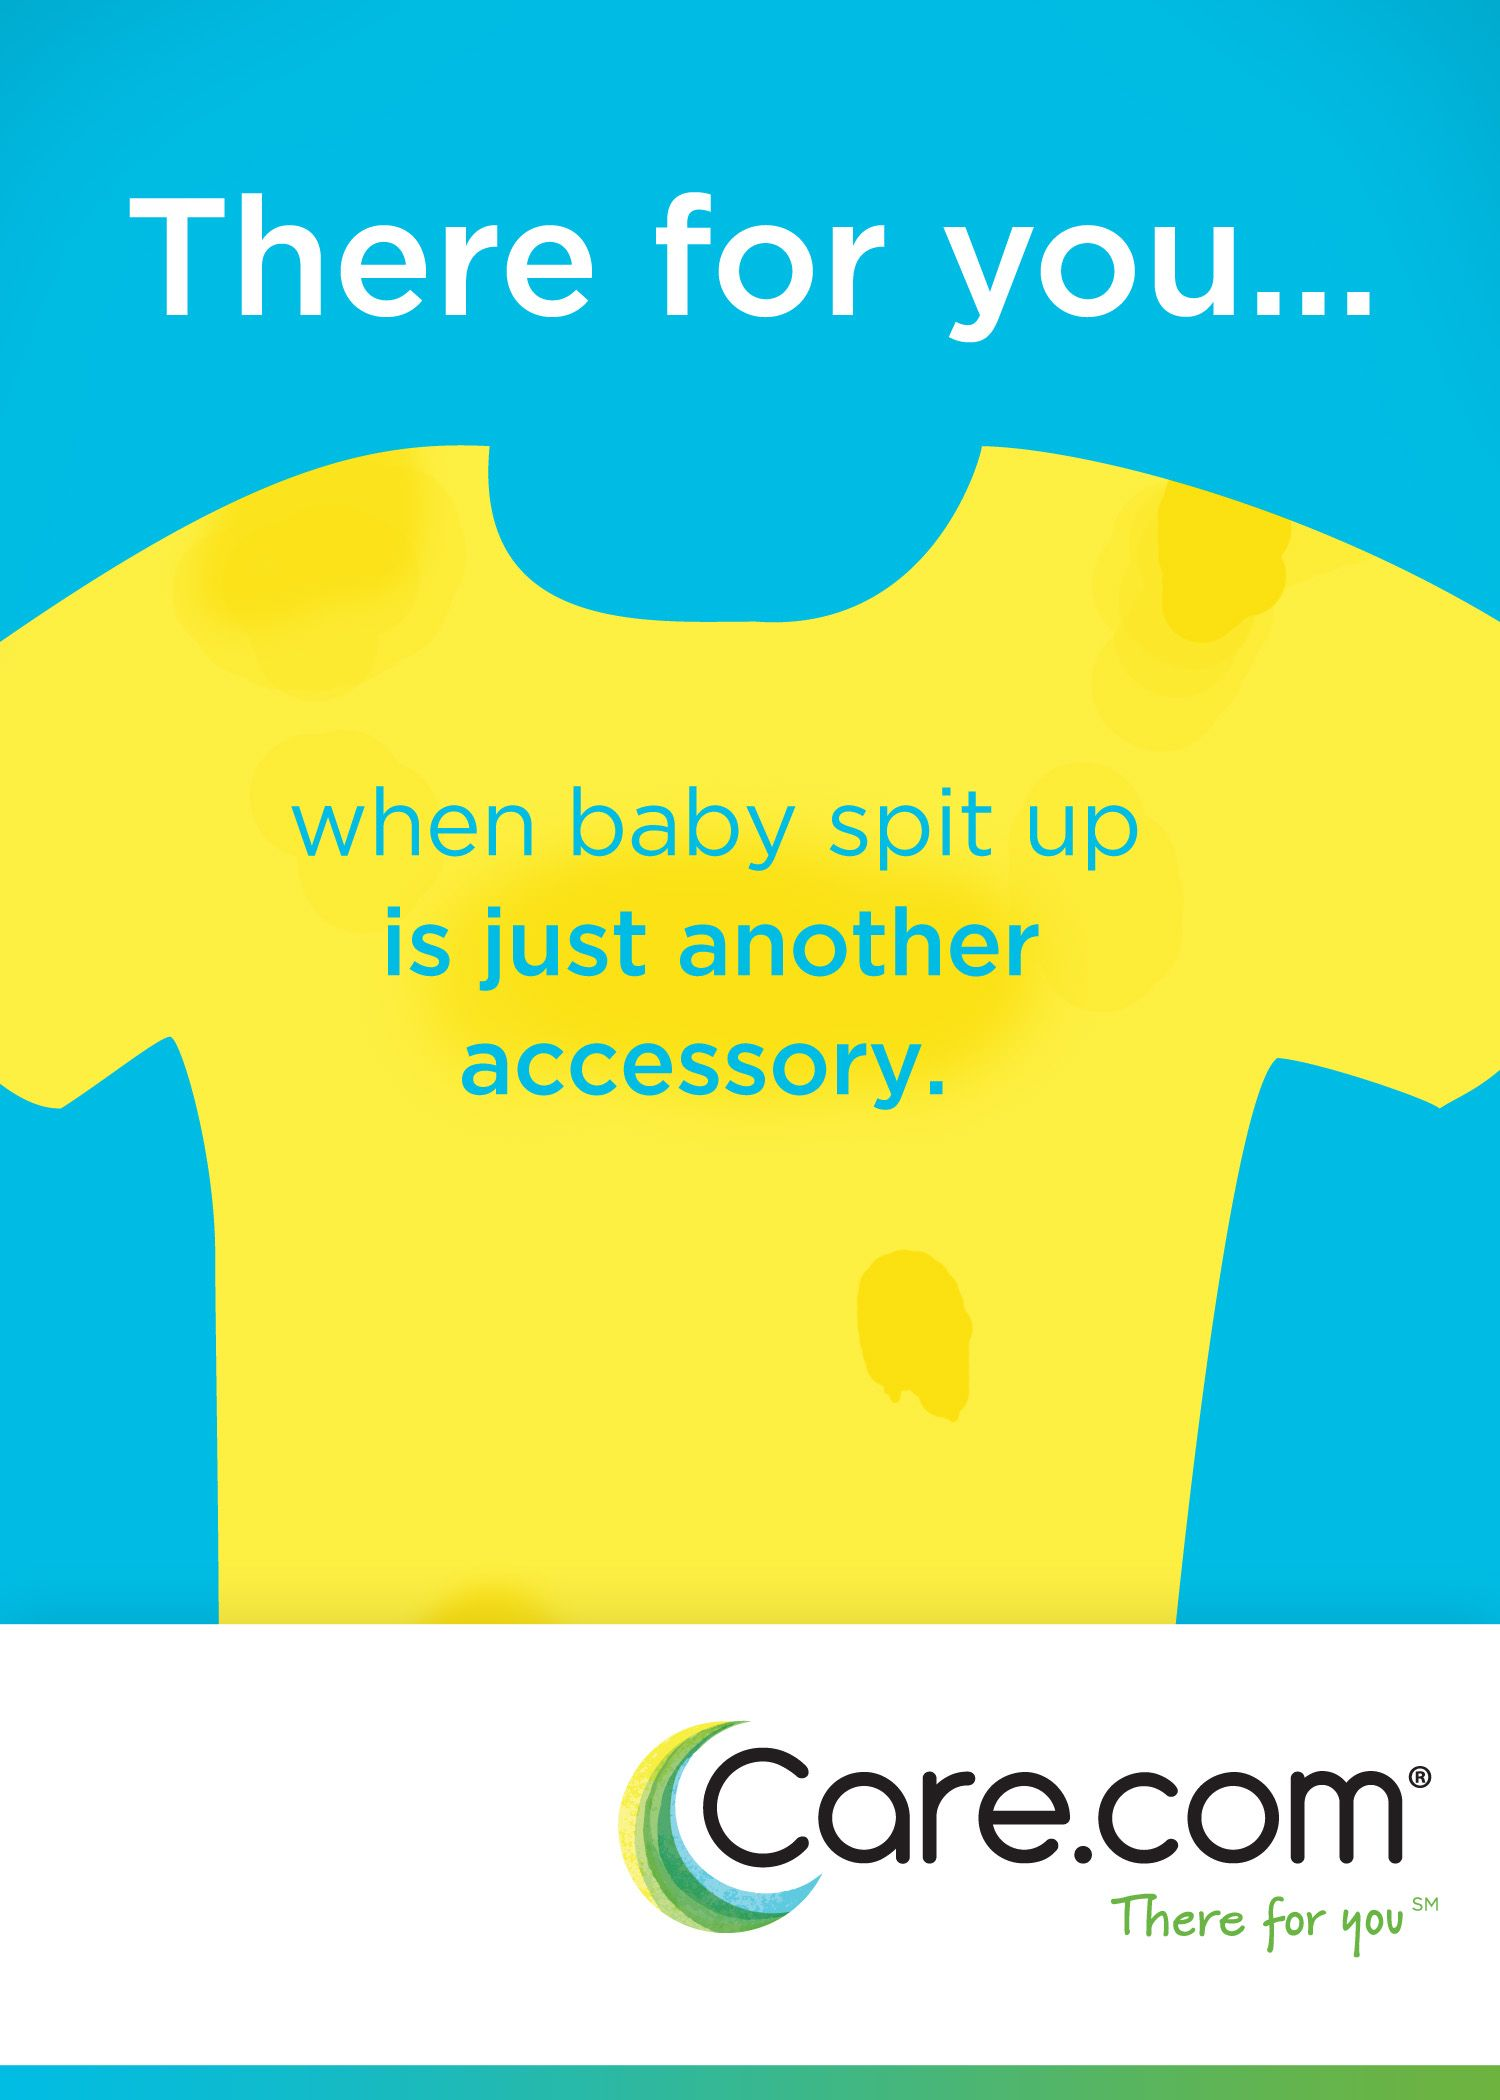 Baby spit up? Goes with everything. #careatcare #nobiggie